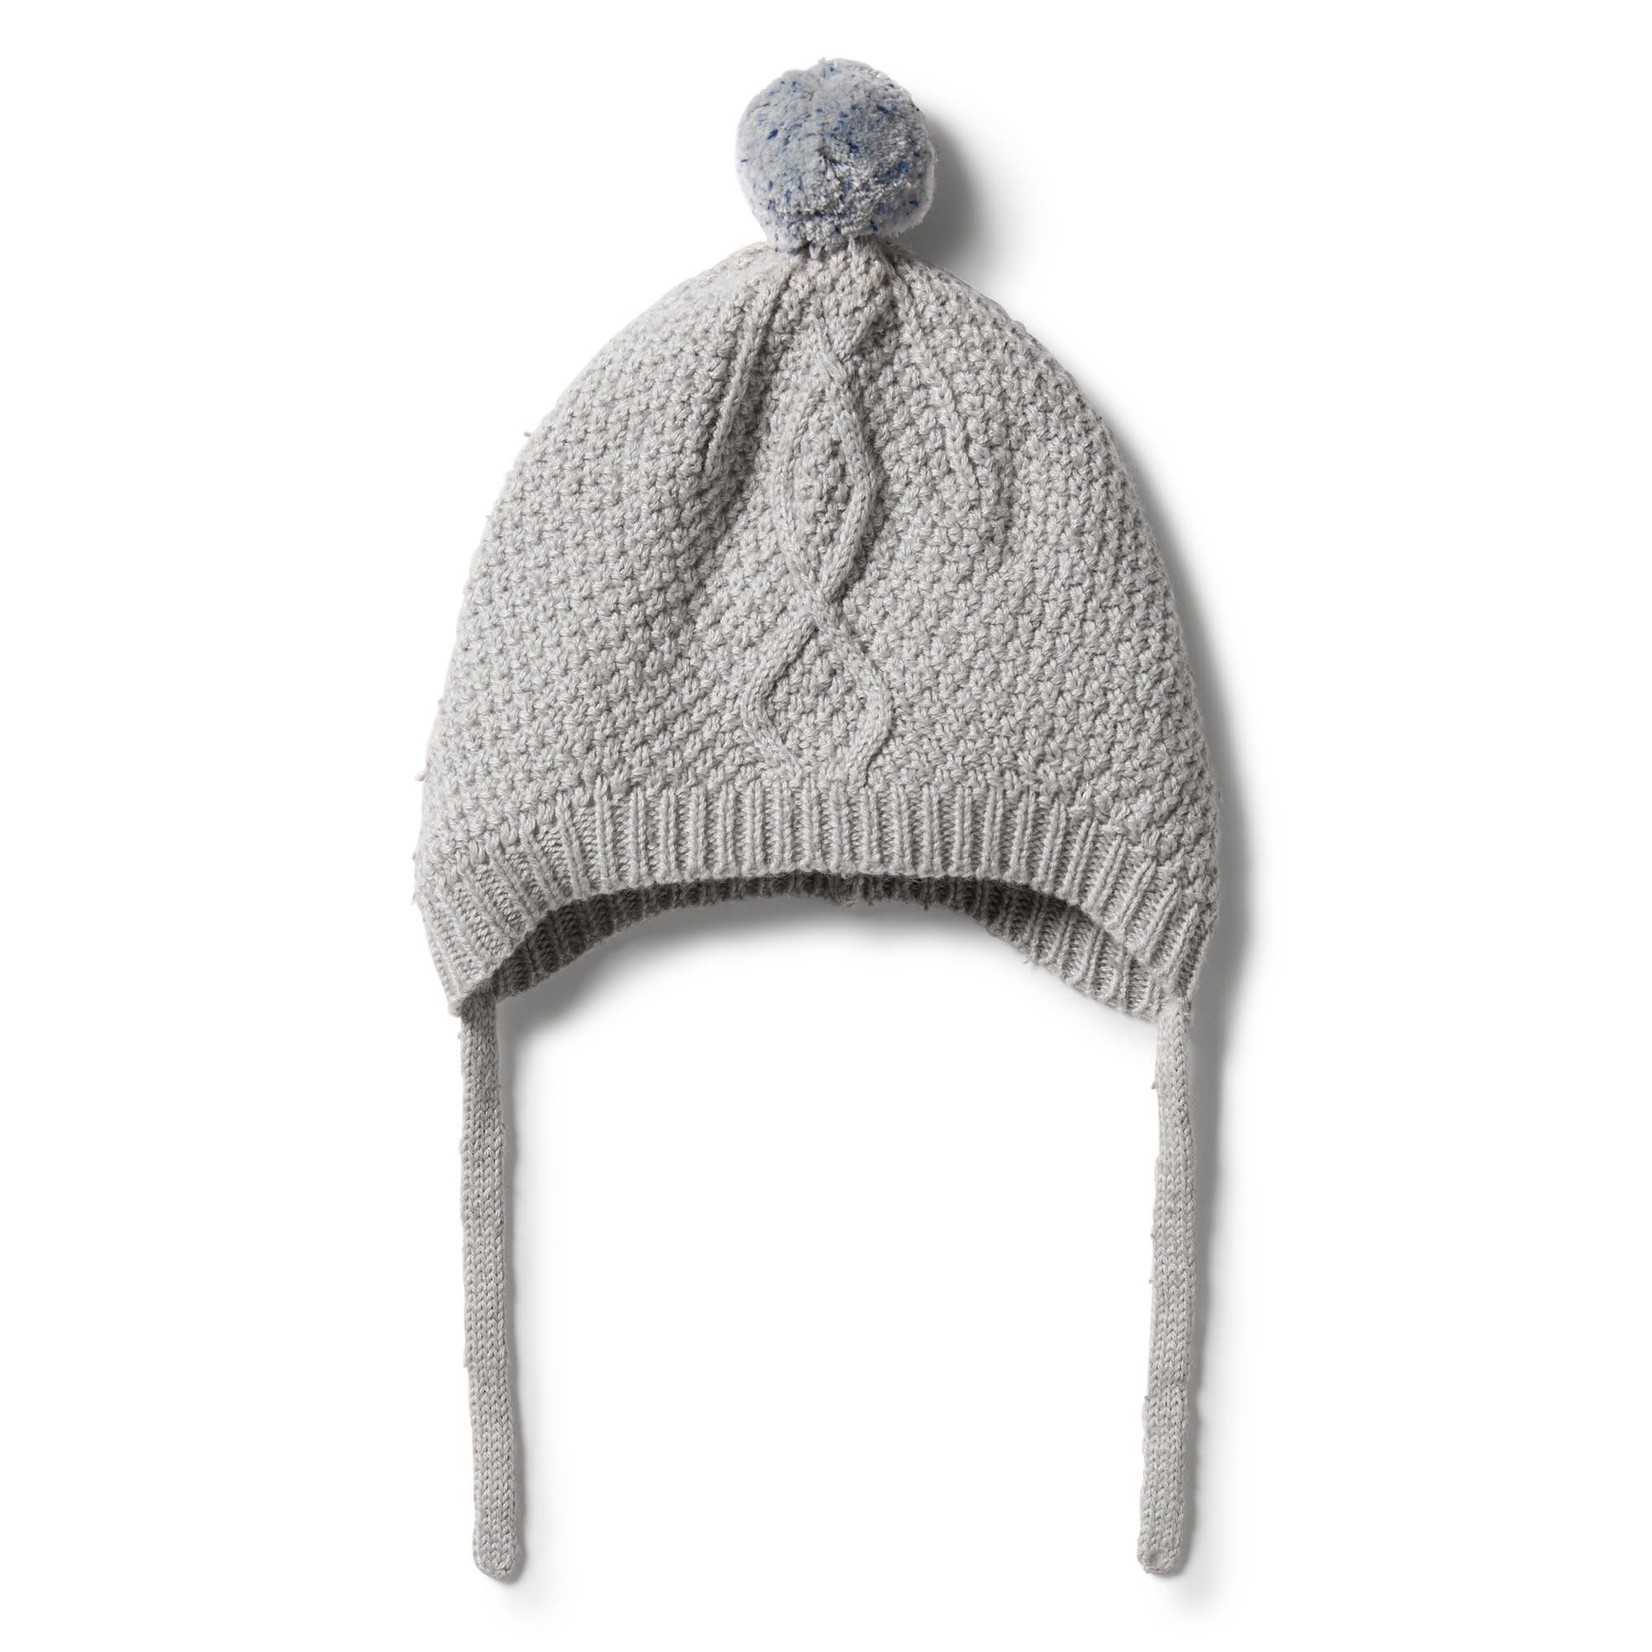 Wilson & Frenchy Wilson & Frenchy Knitted Cable Bonnet